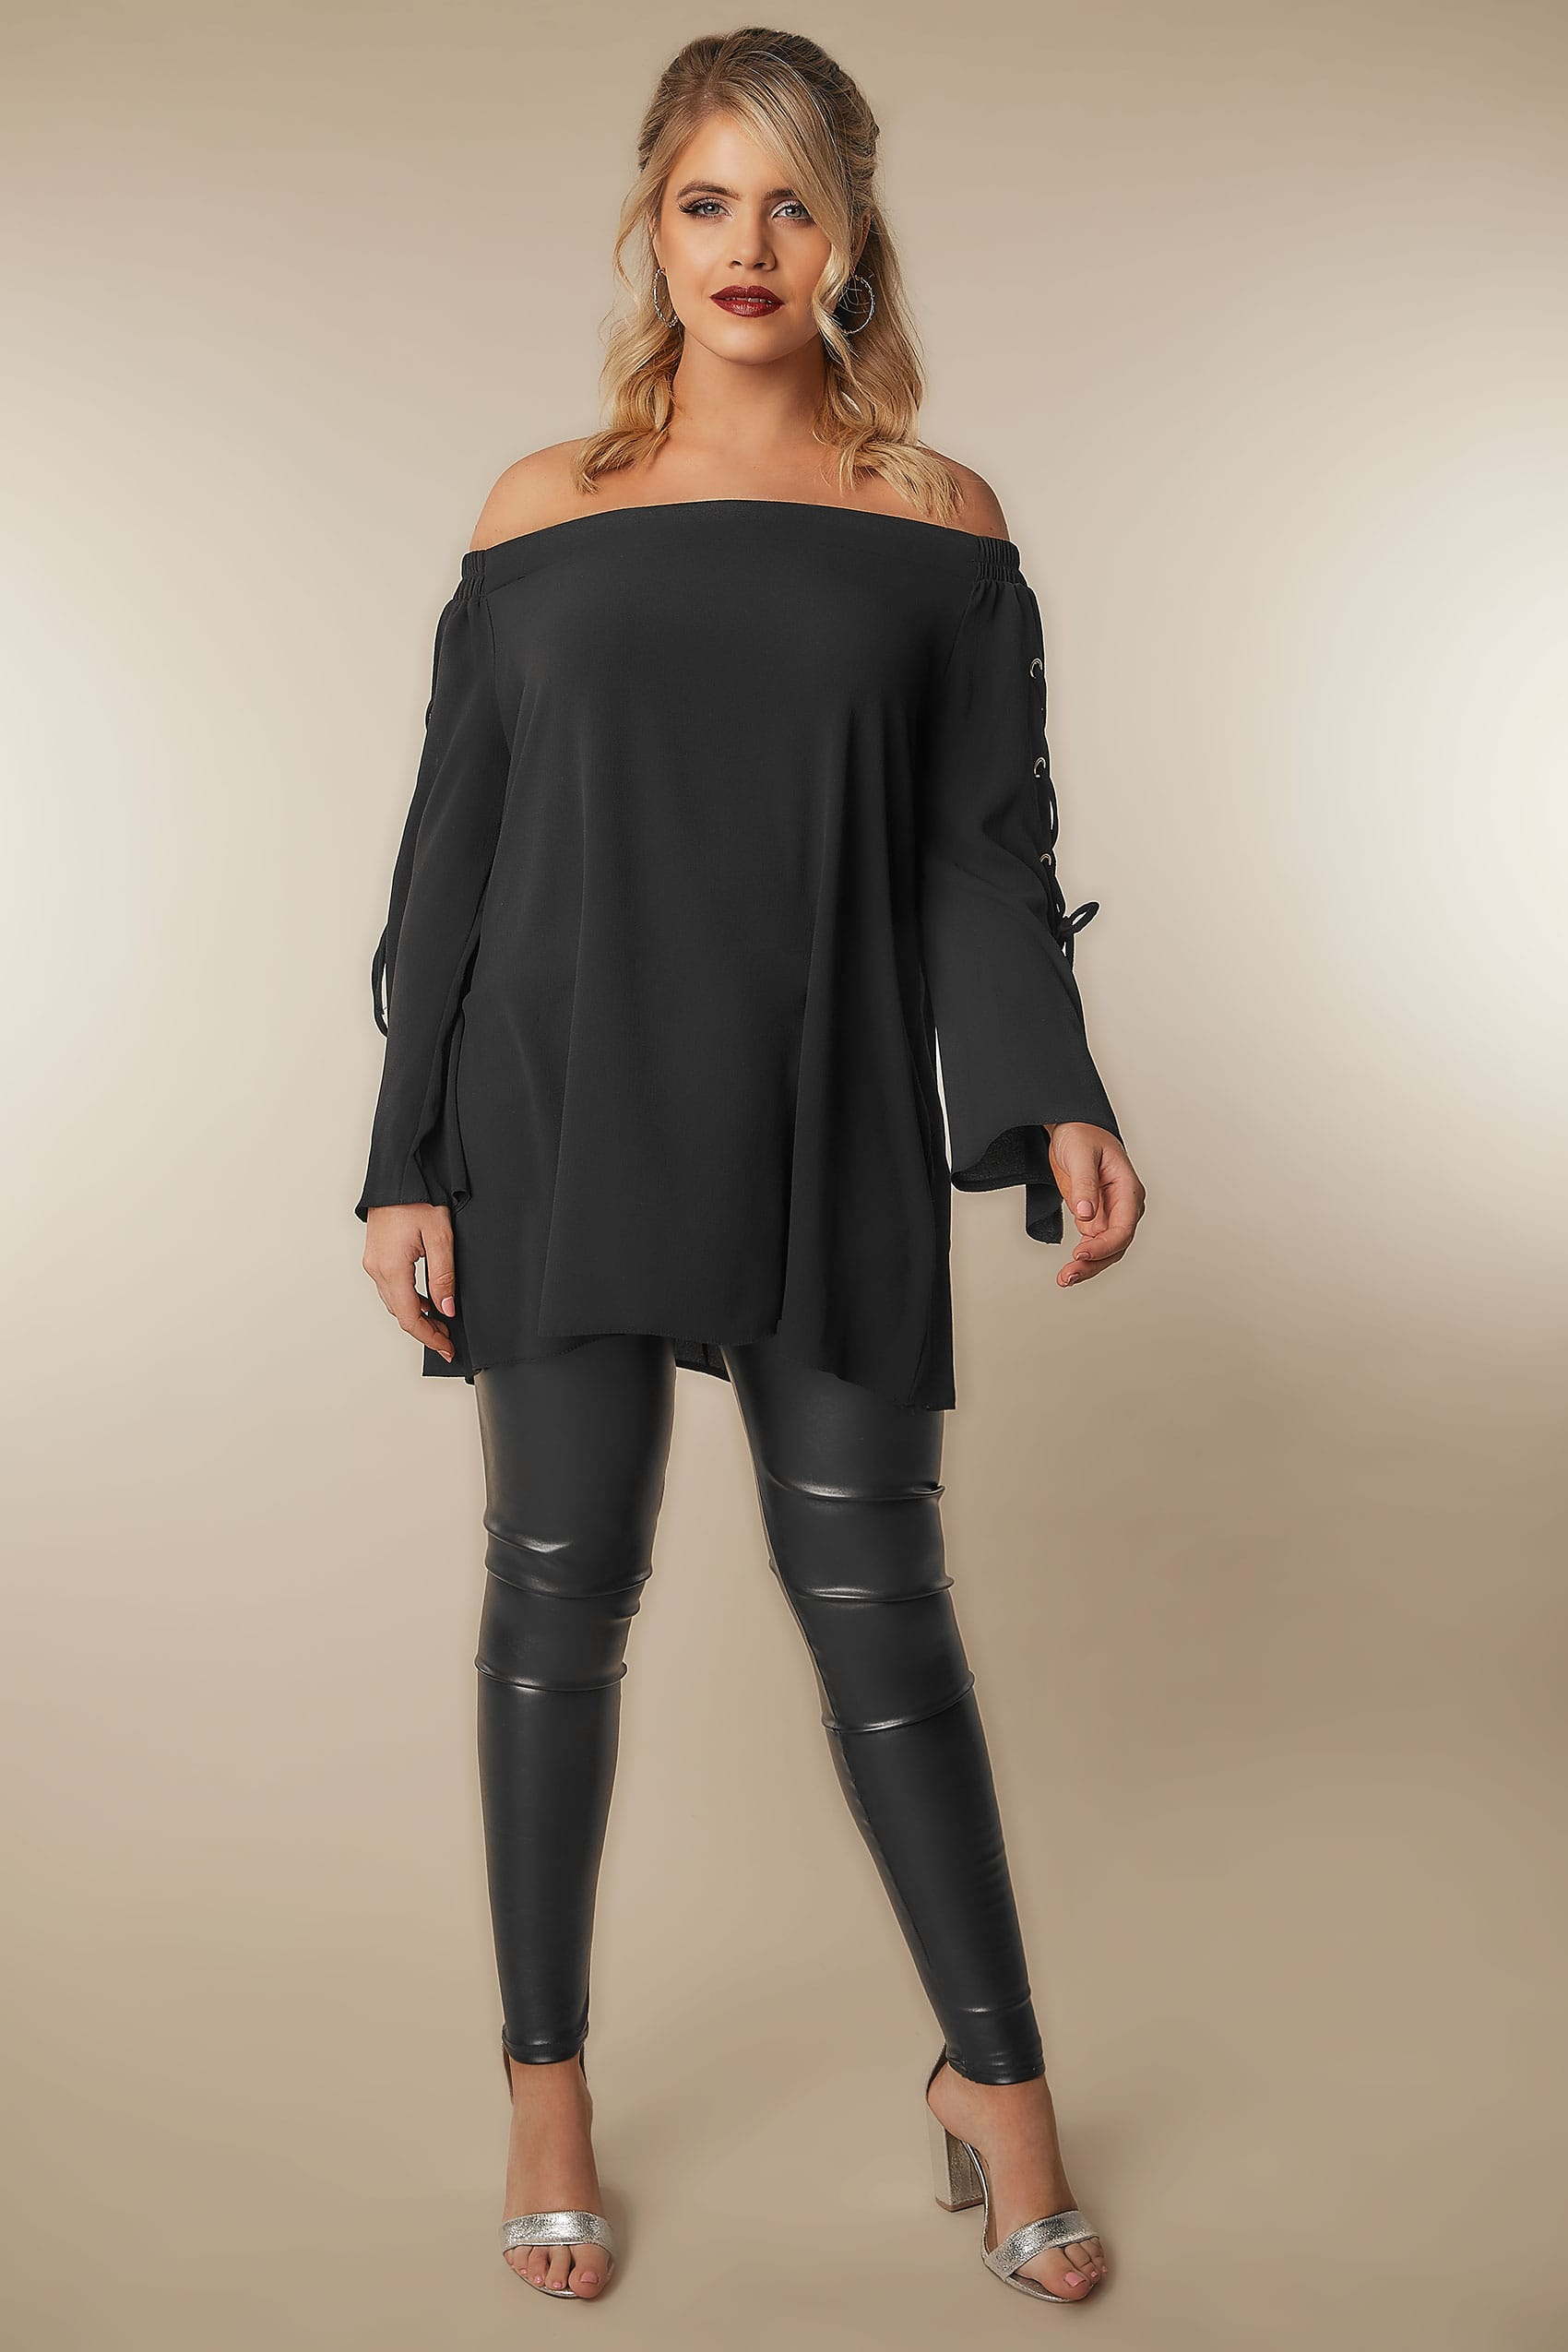 0ddde3ae42492e LIMITED COLLECTION Black Bardot Top With Lace Detailing